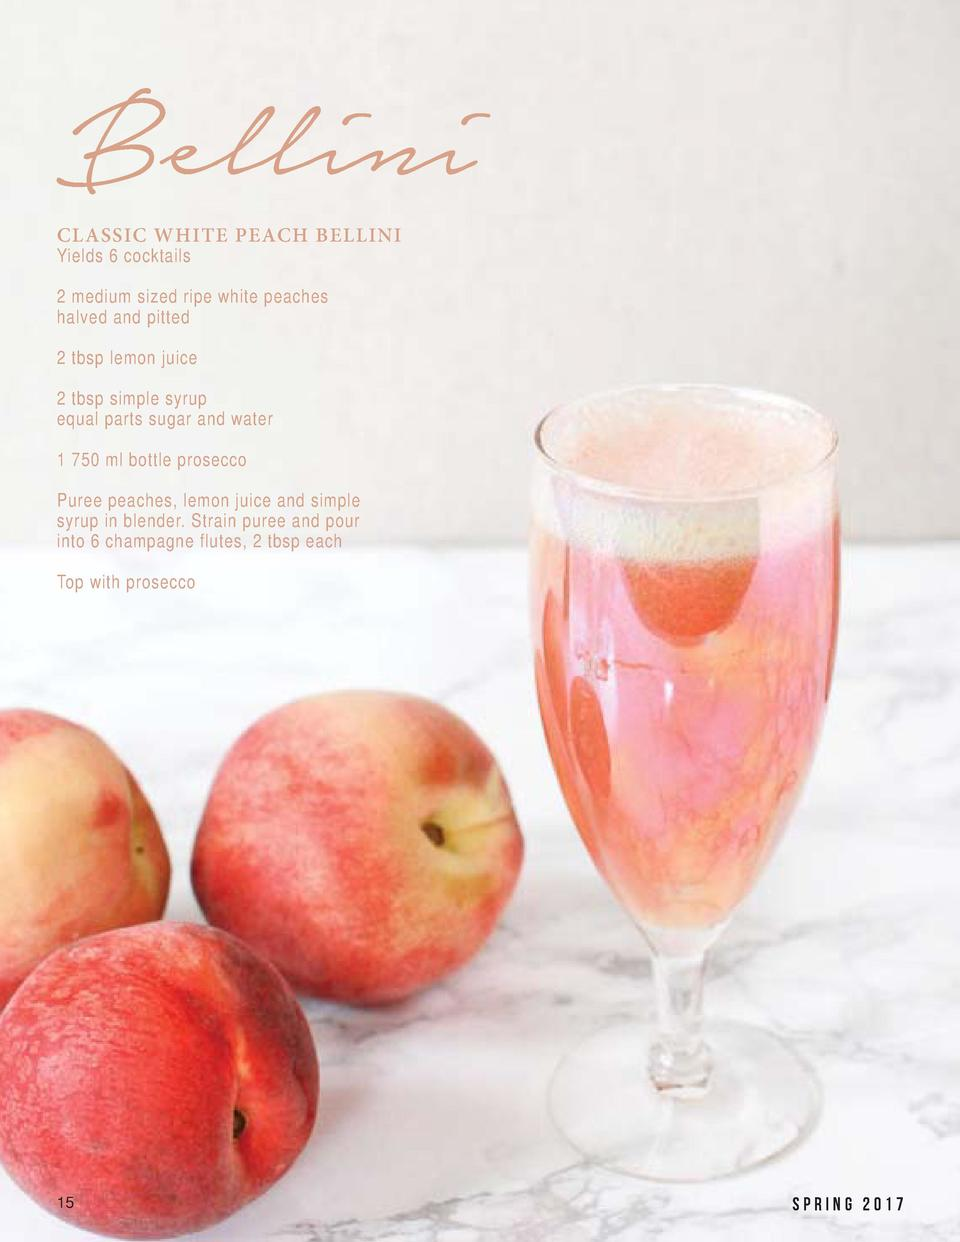 Bellini CLASSIC WHITE PEACH BELLINI Yields 6 cocktails  2 medium sized ripe white peaches halved and pitted 2 tbsp lemon j...